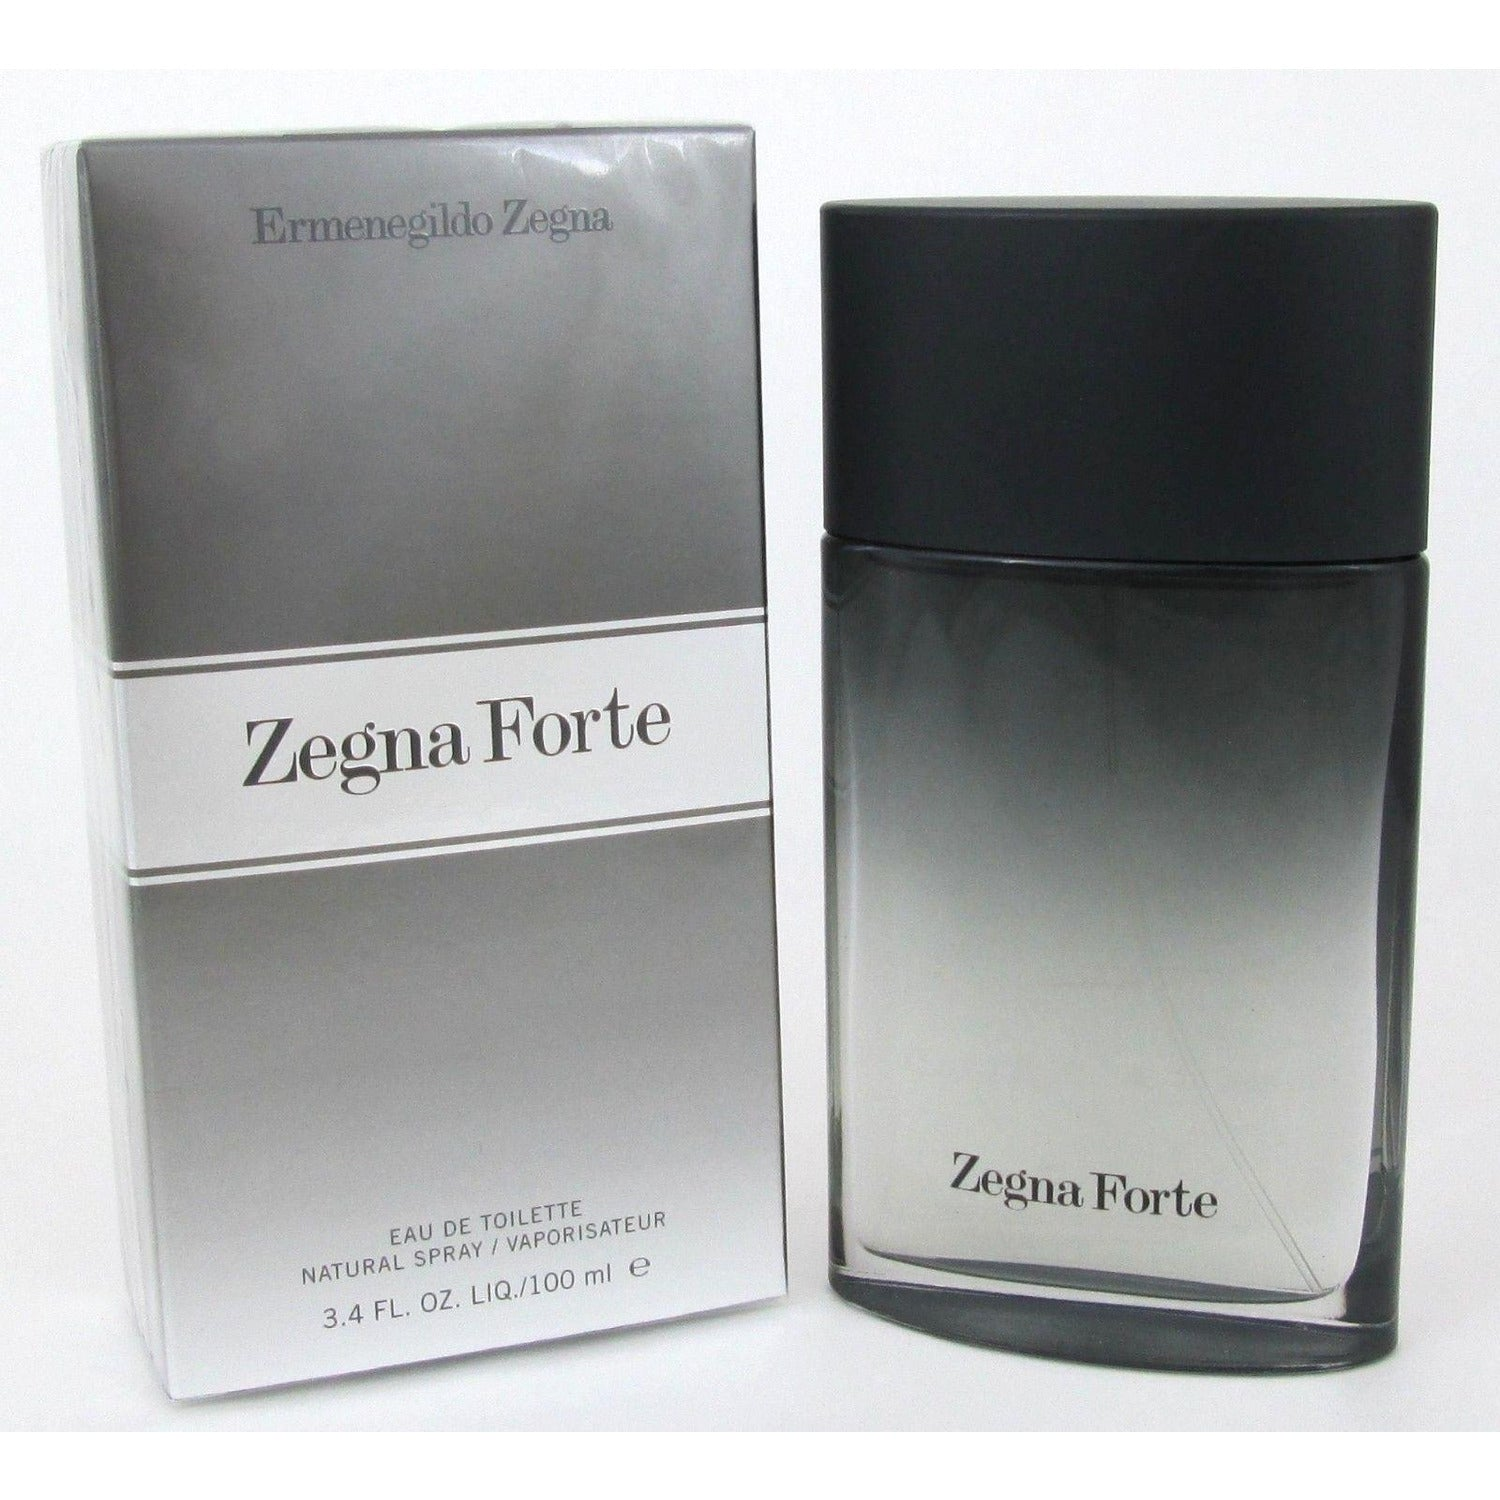 zegna-forte-ermenegildo-zegna-men-cologne-edt-3-4-oz-3-3-new-in-box